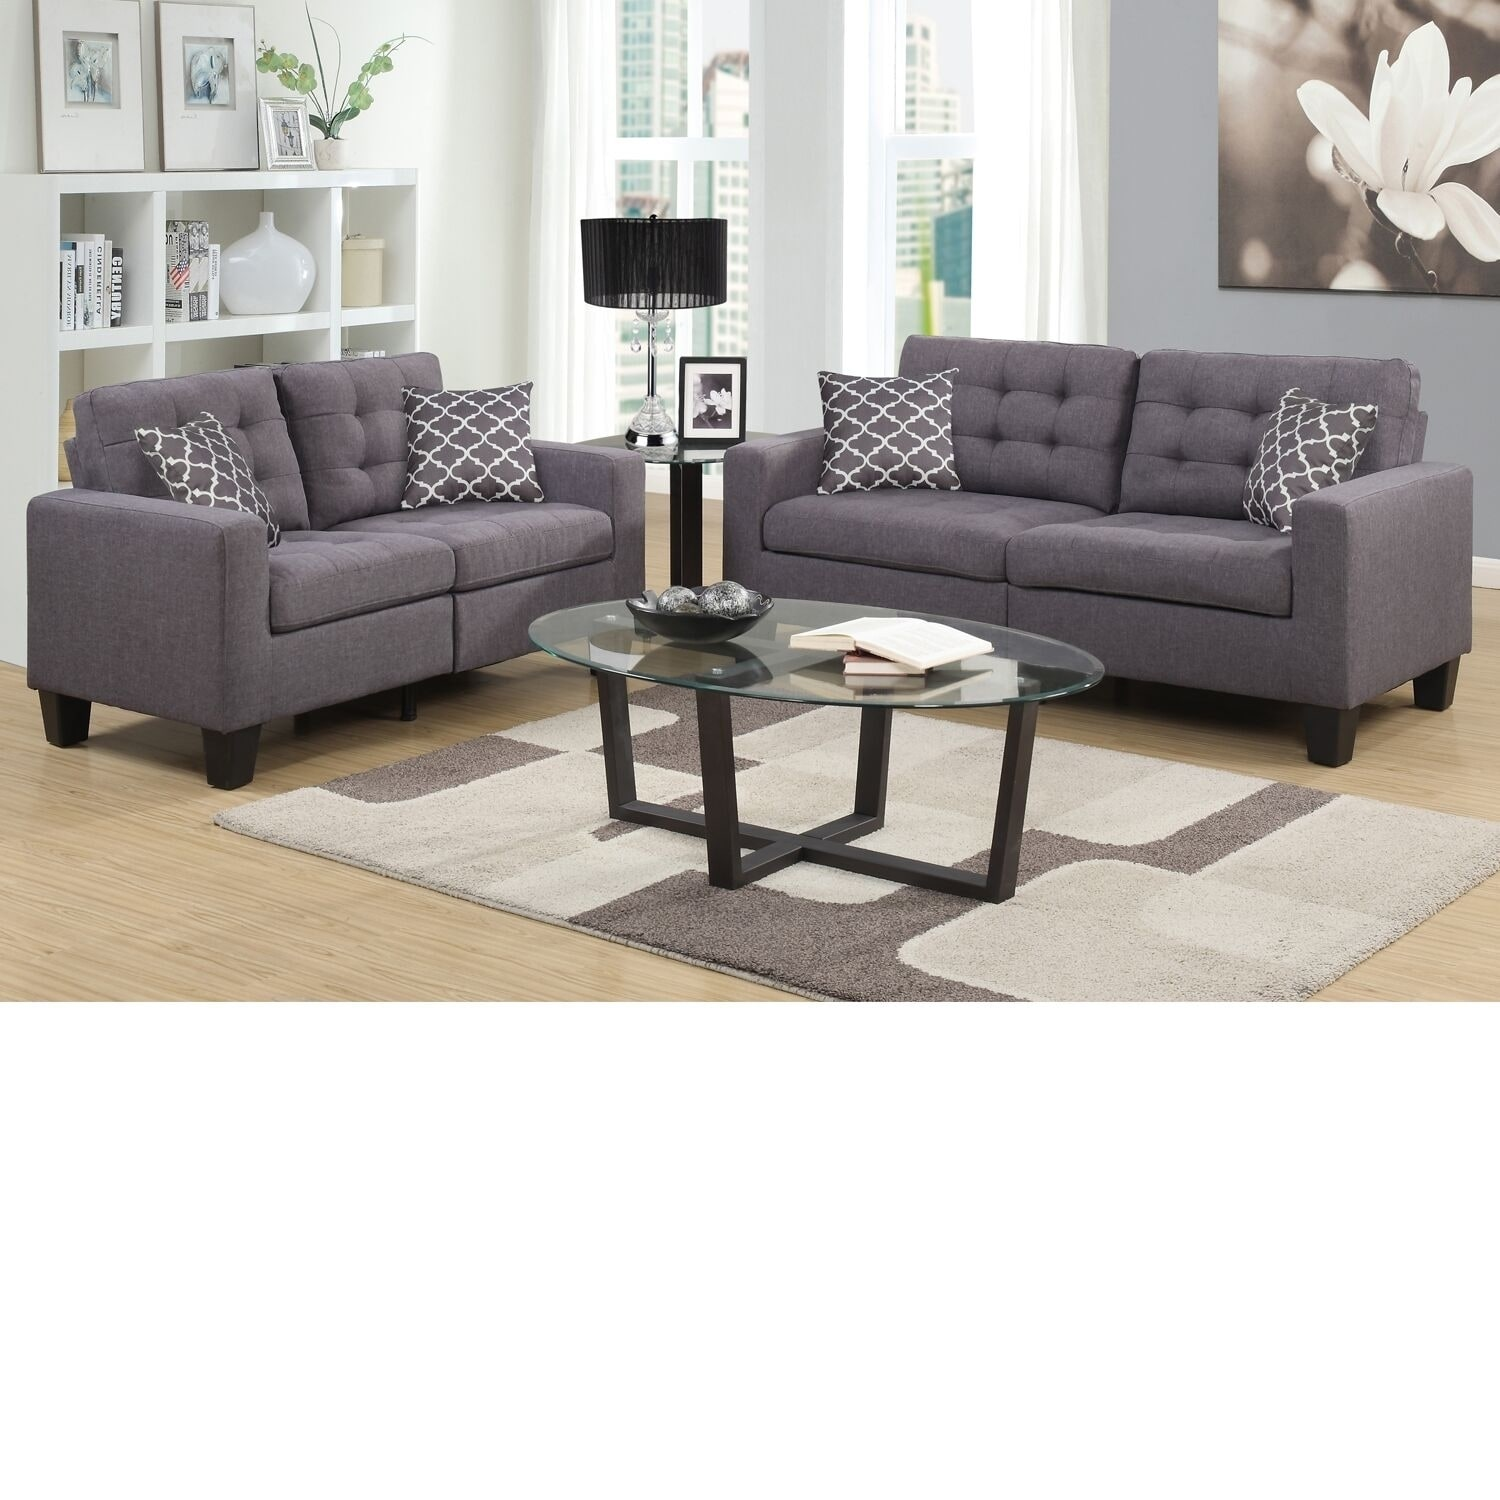 Home Source Bateson Grey 2 Piece Tufted Sofa And Loveseat Set Beige